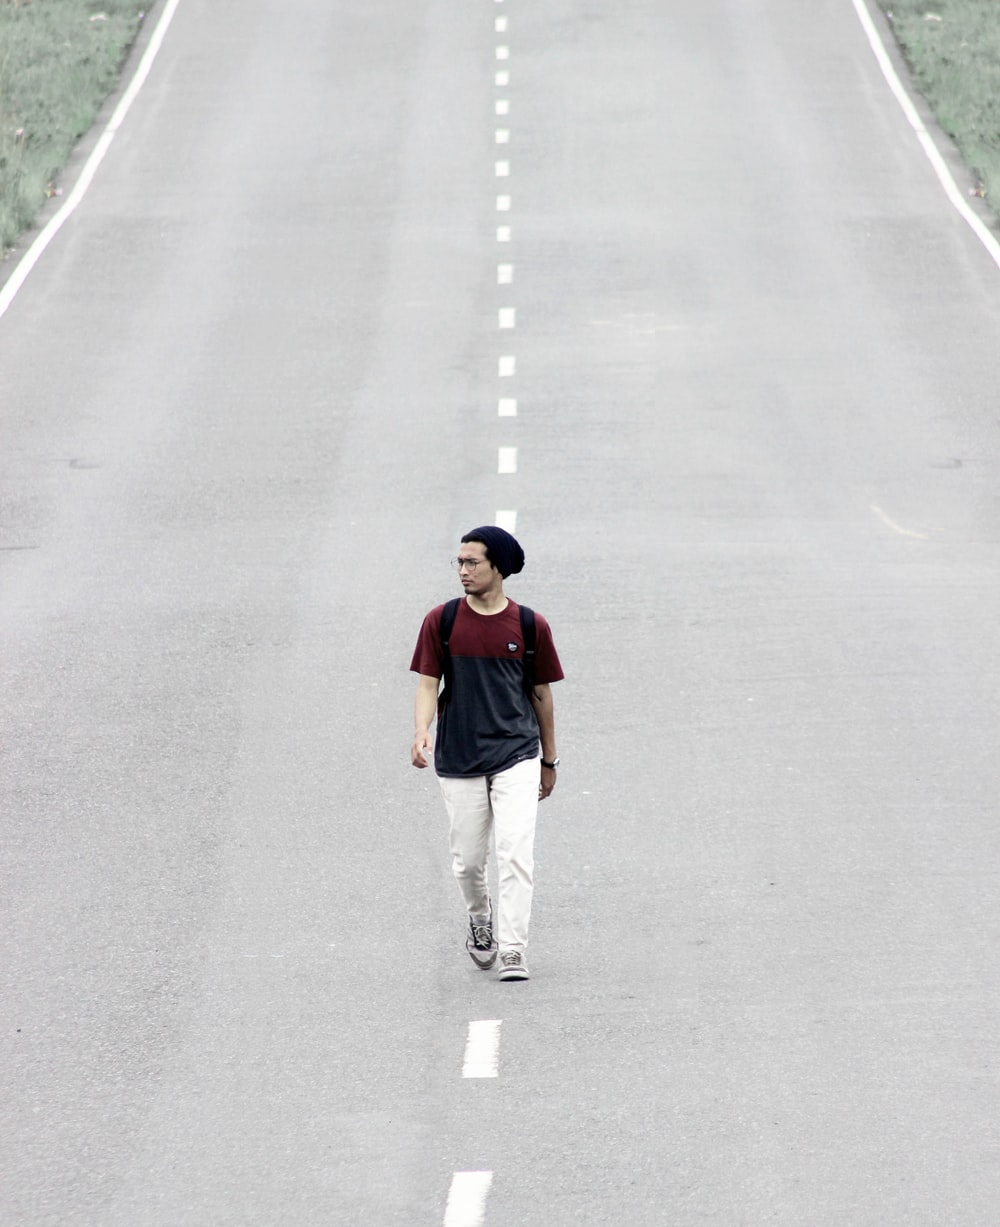 man walking on road at daytime